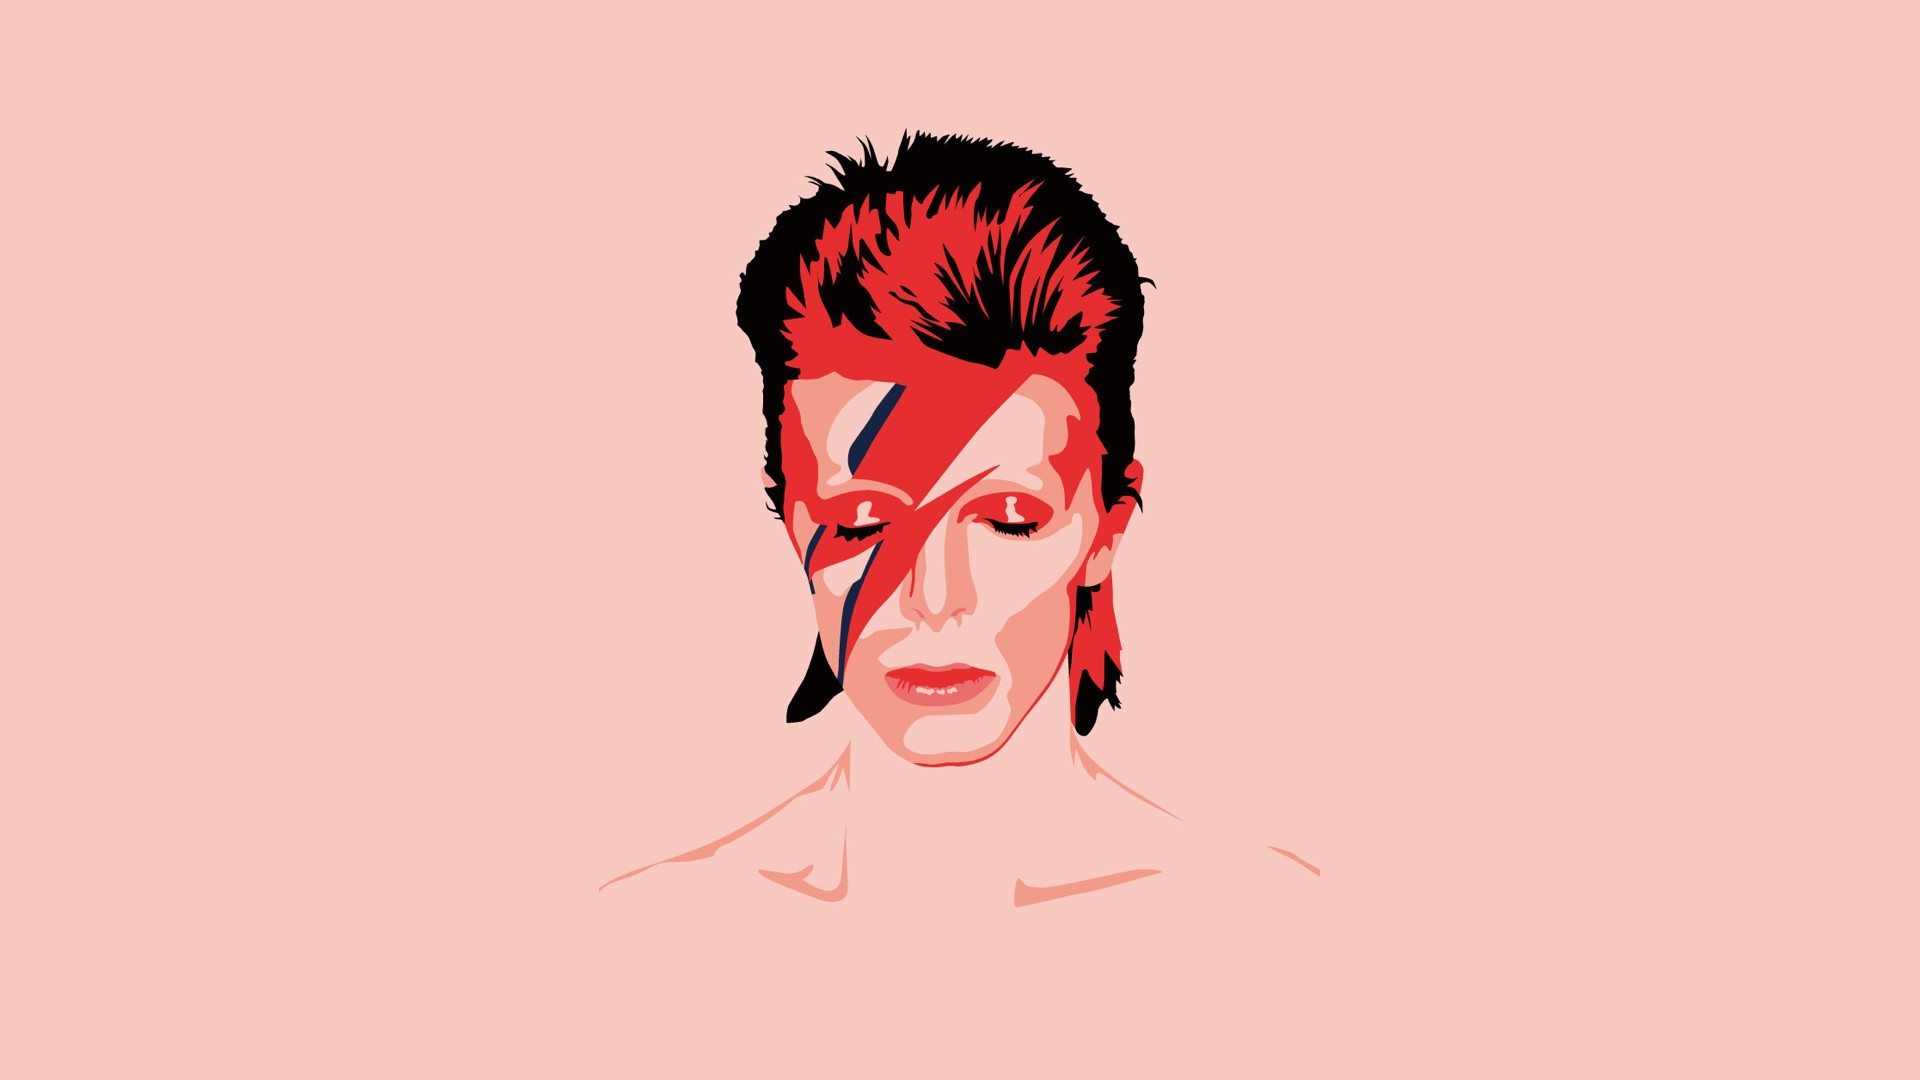 Rise And Fall Of Ziggy Stardust Wallpaper 1920x1080 David Bowie Wallpaper 183 ① Download Free Amazing High